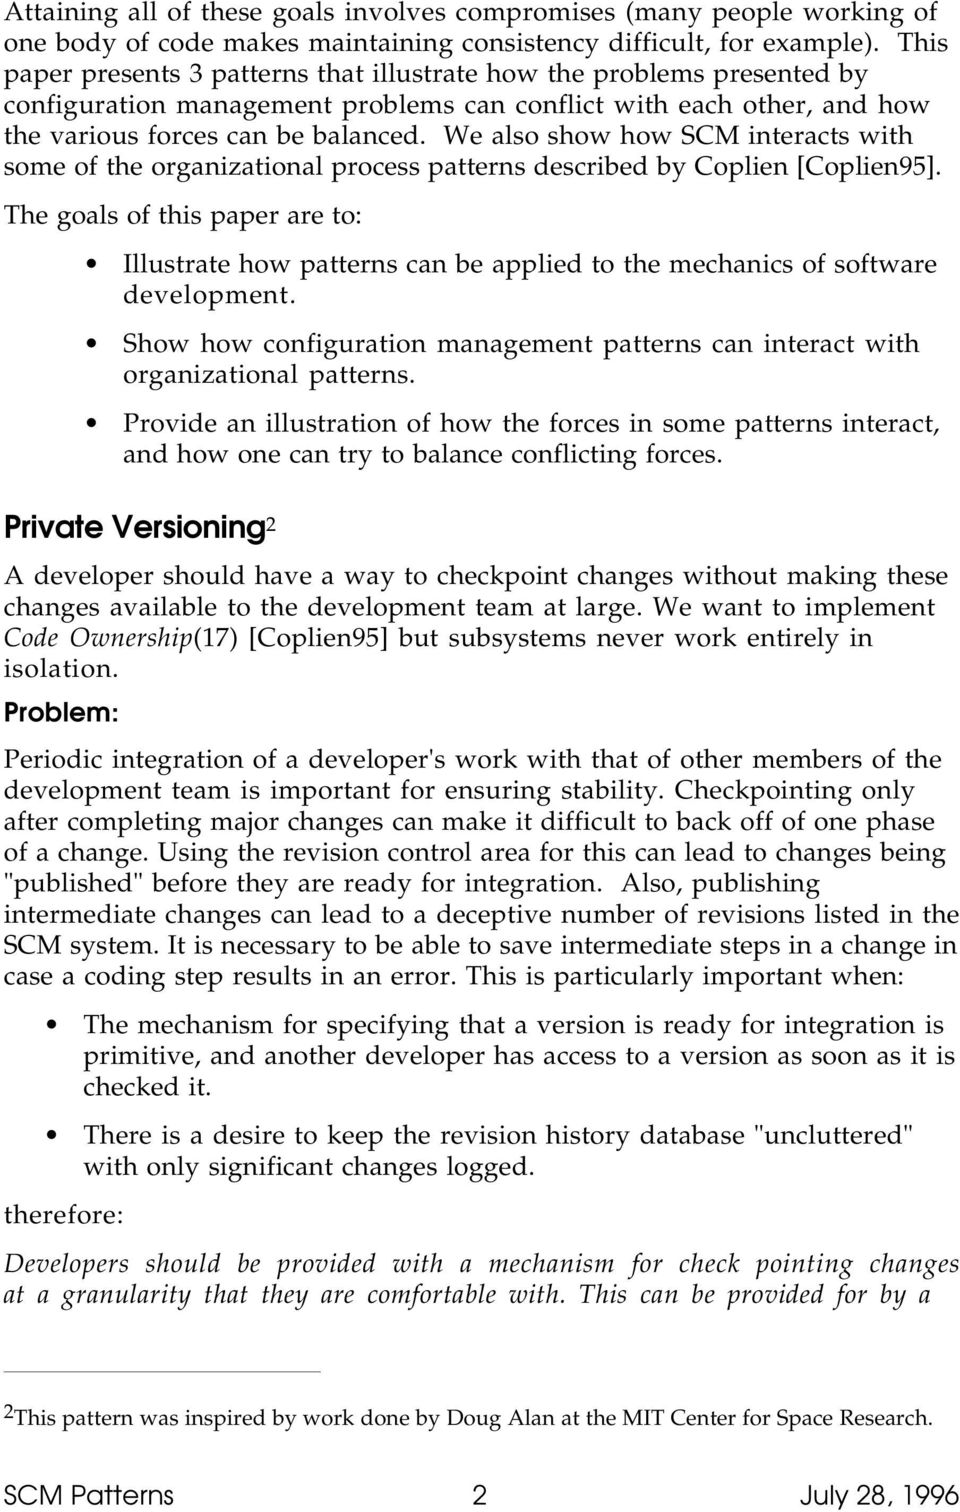 We also show how SCM interacts with some of the organizational process patterns described by Coplien [Coplien95].